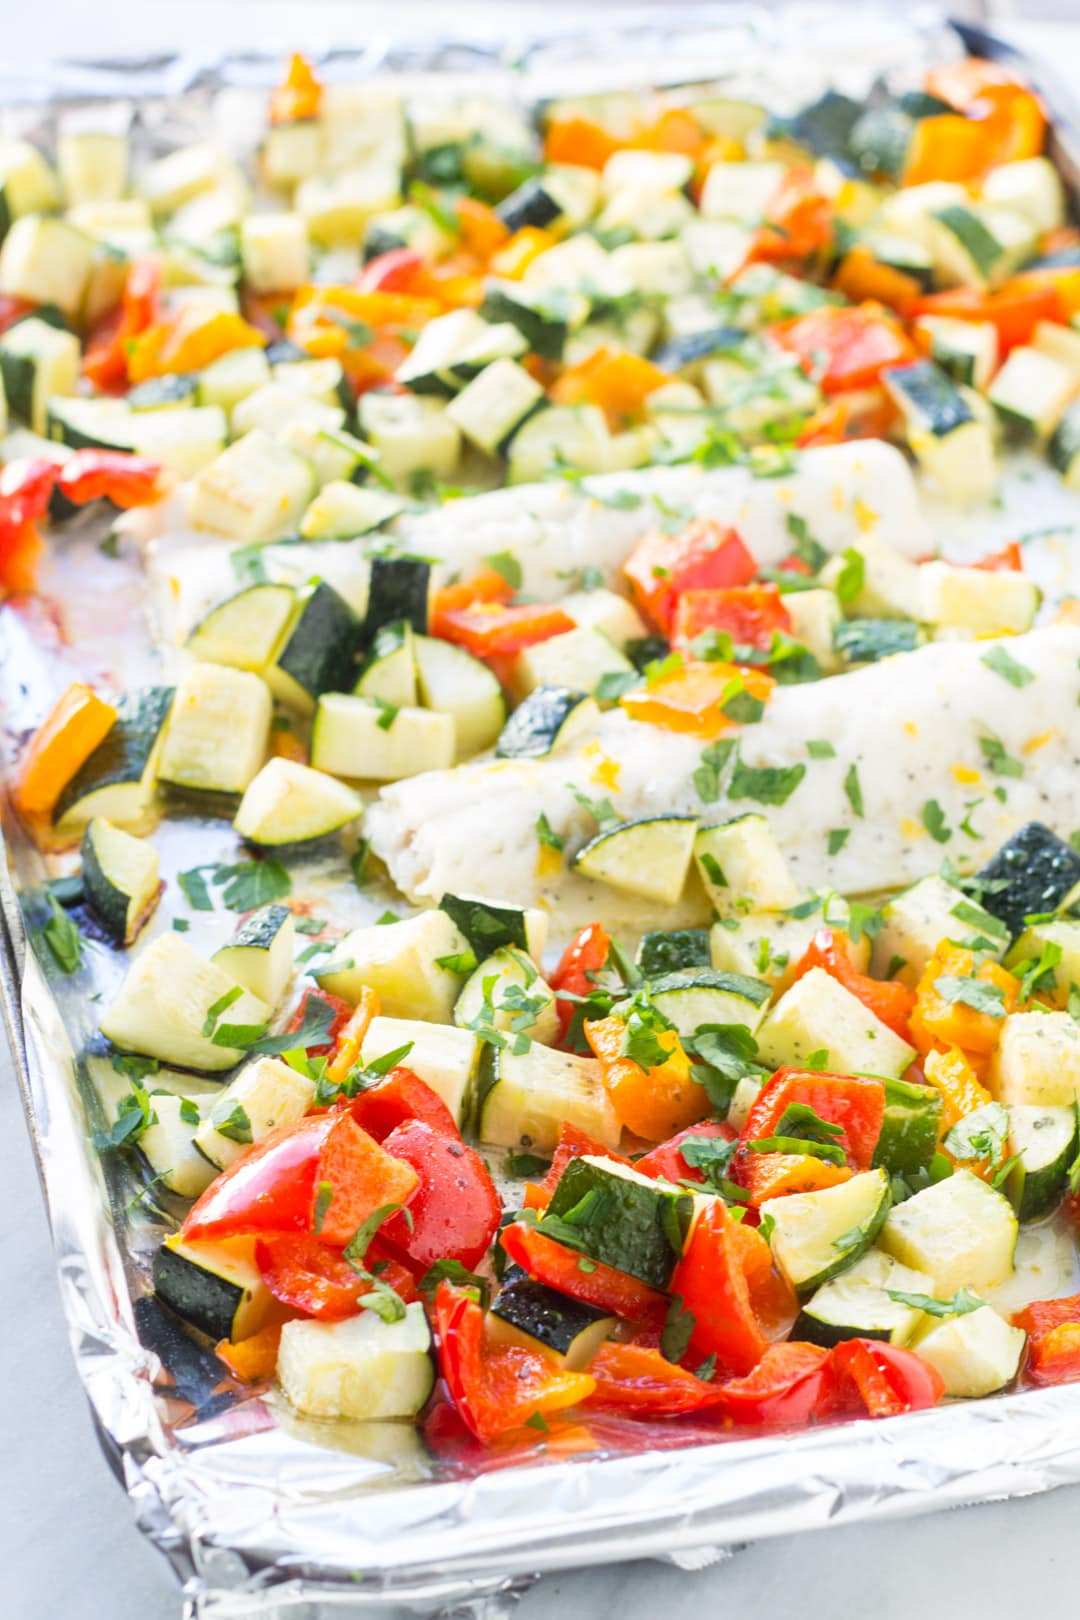 A sheet pan with baked cod, zucchini and bell peppers flavored with lemon and parsley.